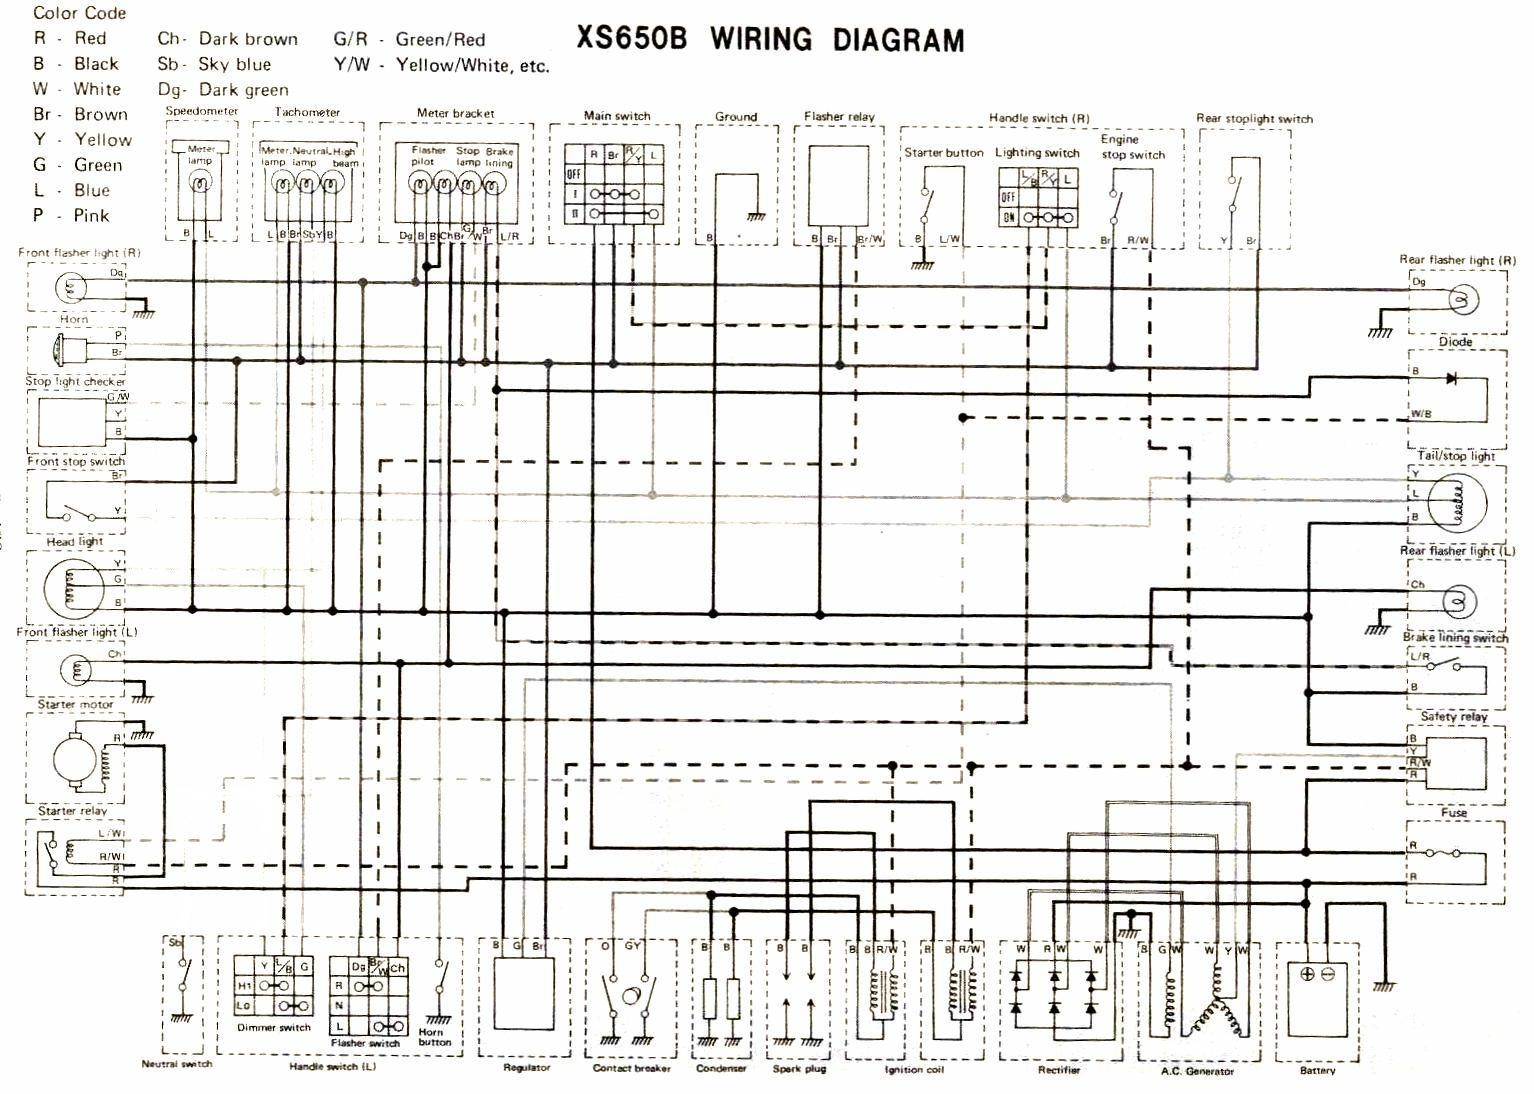 yamaha xvs1100 wiring diagram carbonvote mudit blog u2022 rh carbonvote mudit blog 2005 yamaha v star 1100 wiring diagram 2000 yamaha v star 1100 wiring diagram